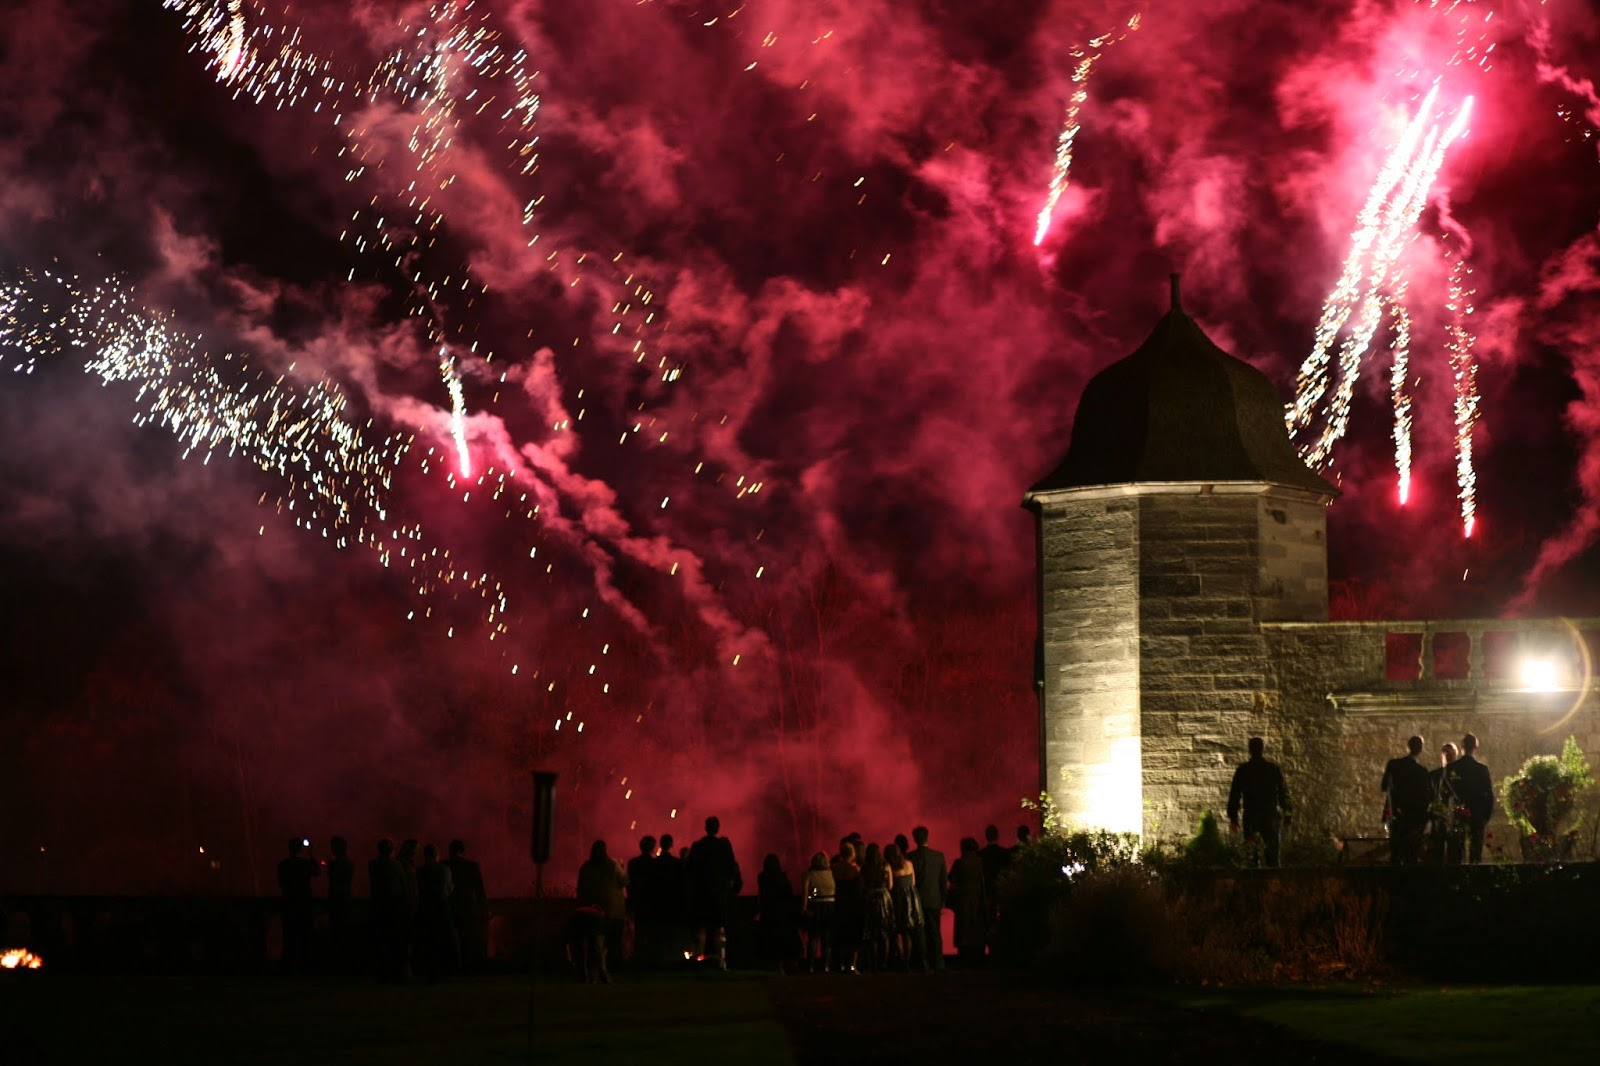 Fireworks at a castle in East Lothian, Scotland in 2007